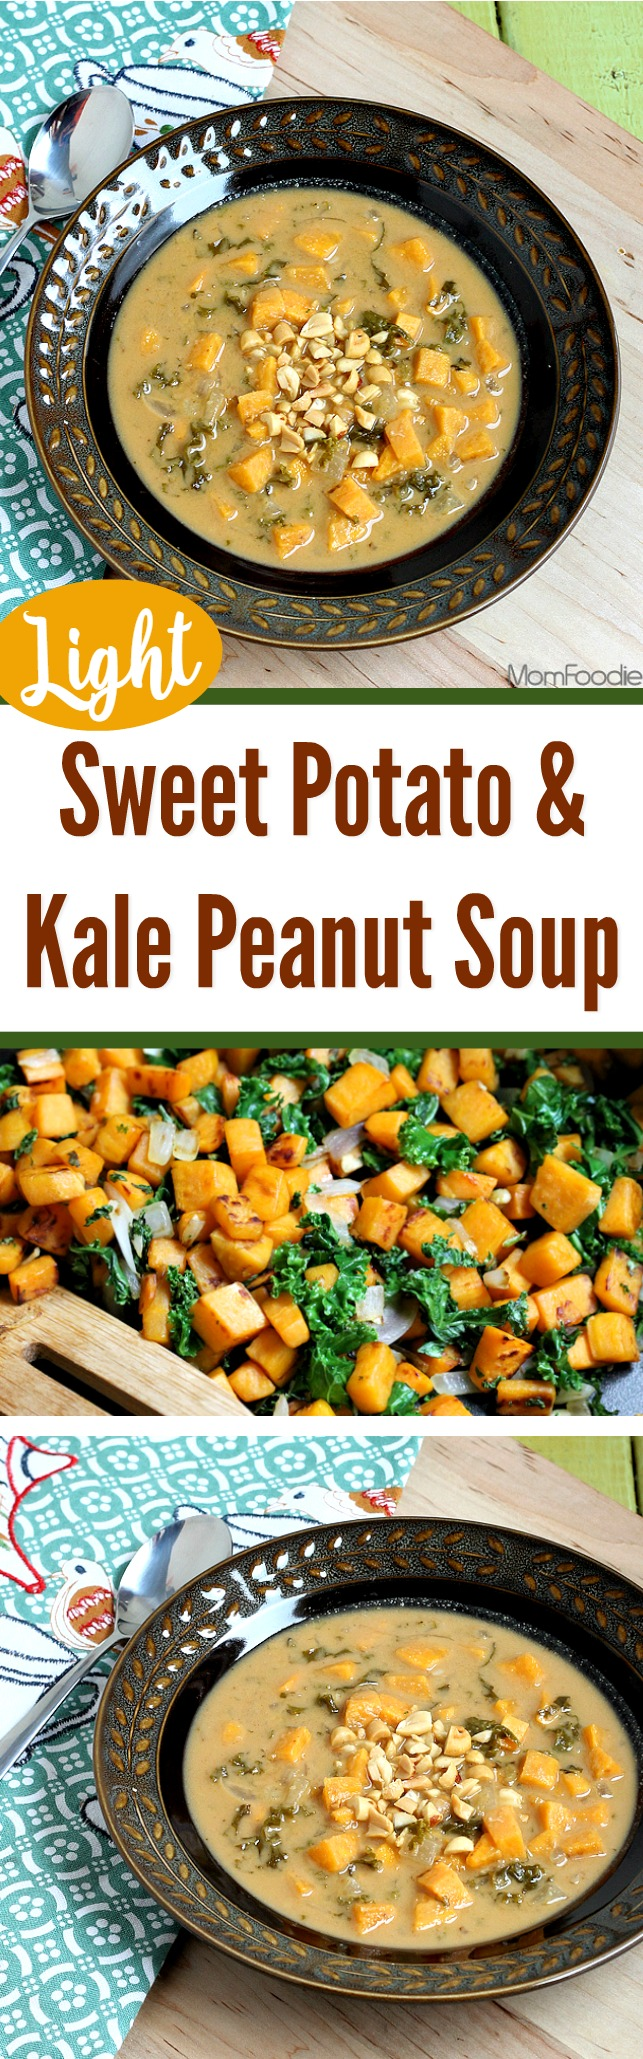 Sweet Potato & Kale Peanut Soup